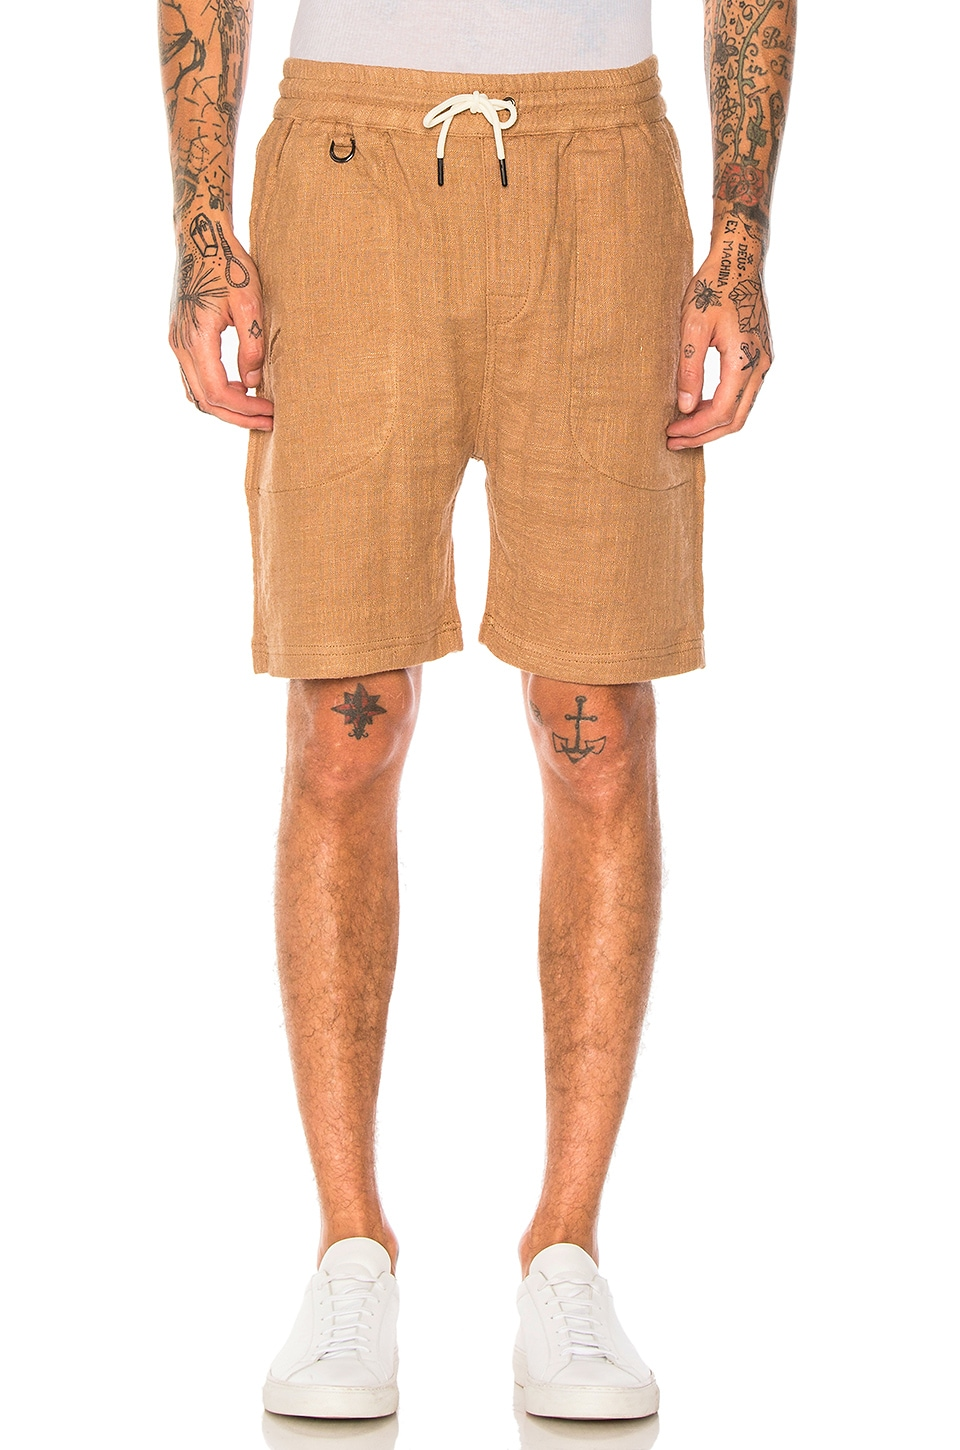 Ezraa Shorts by Publish